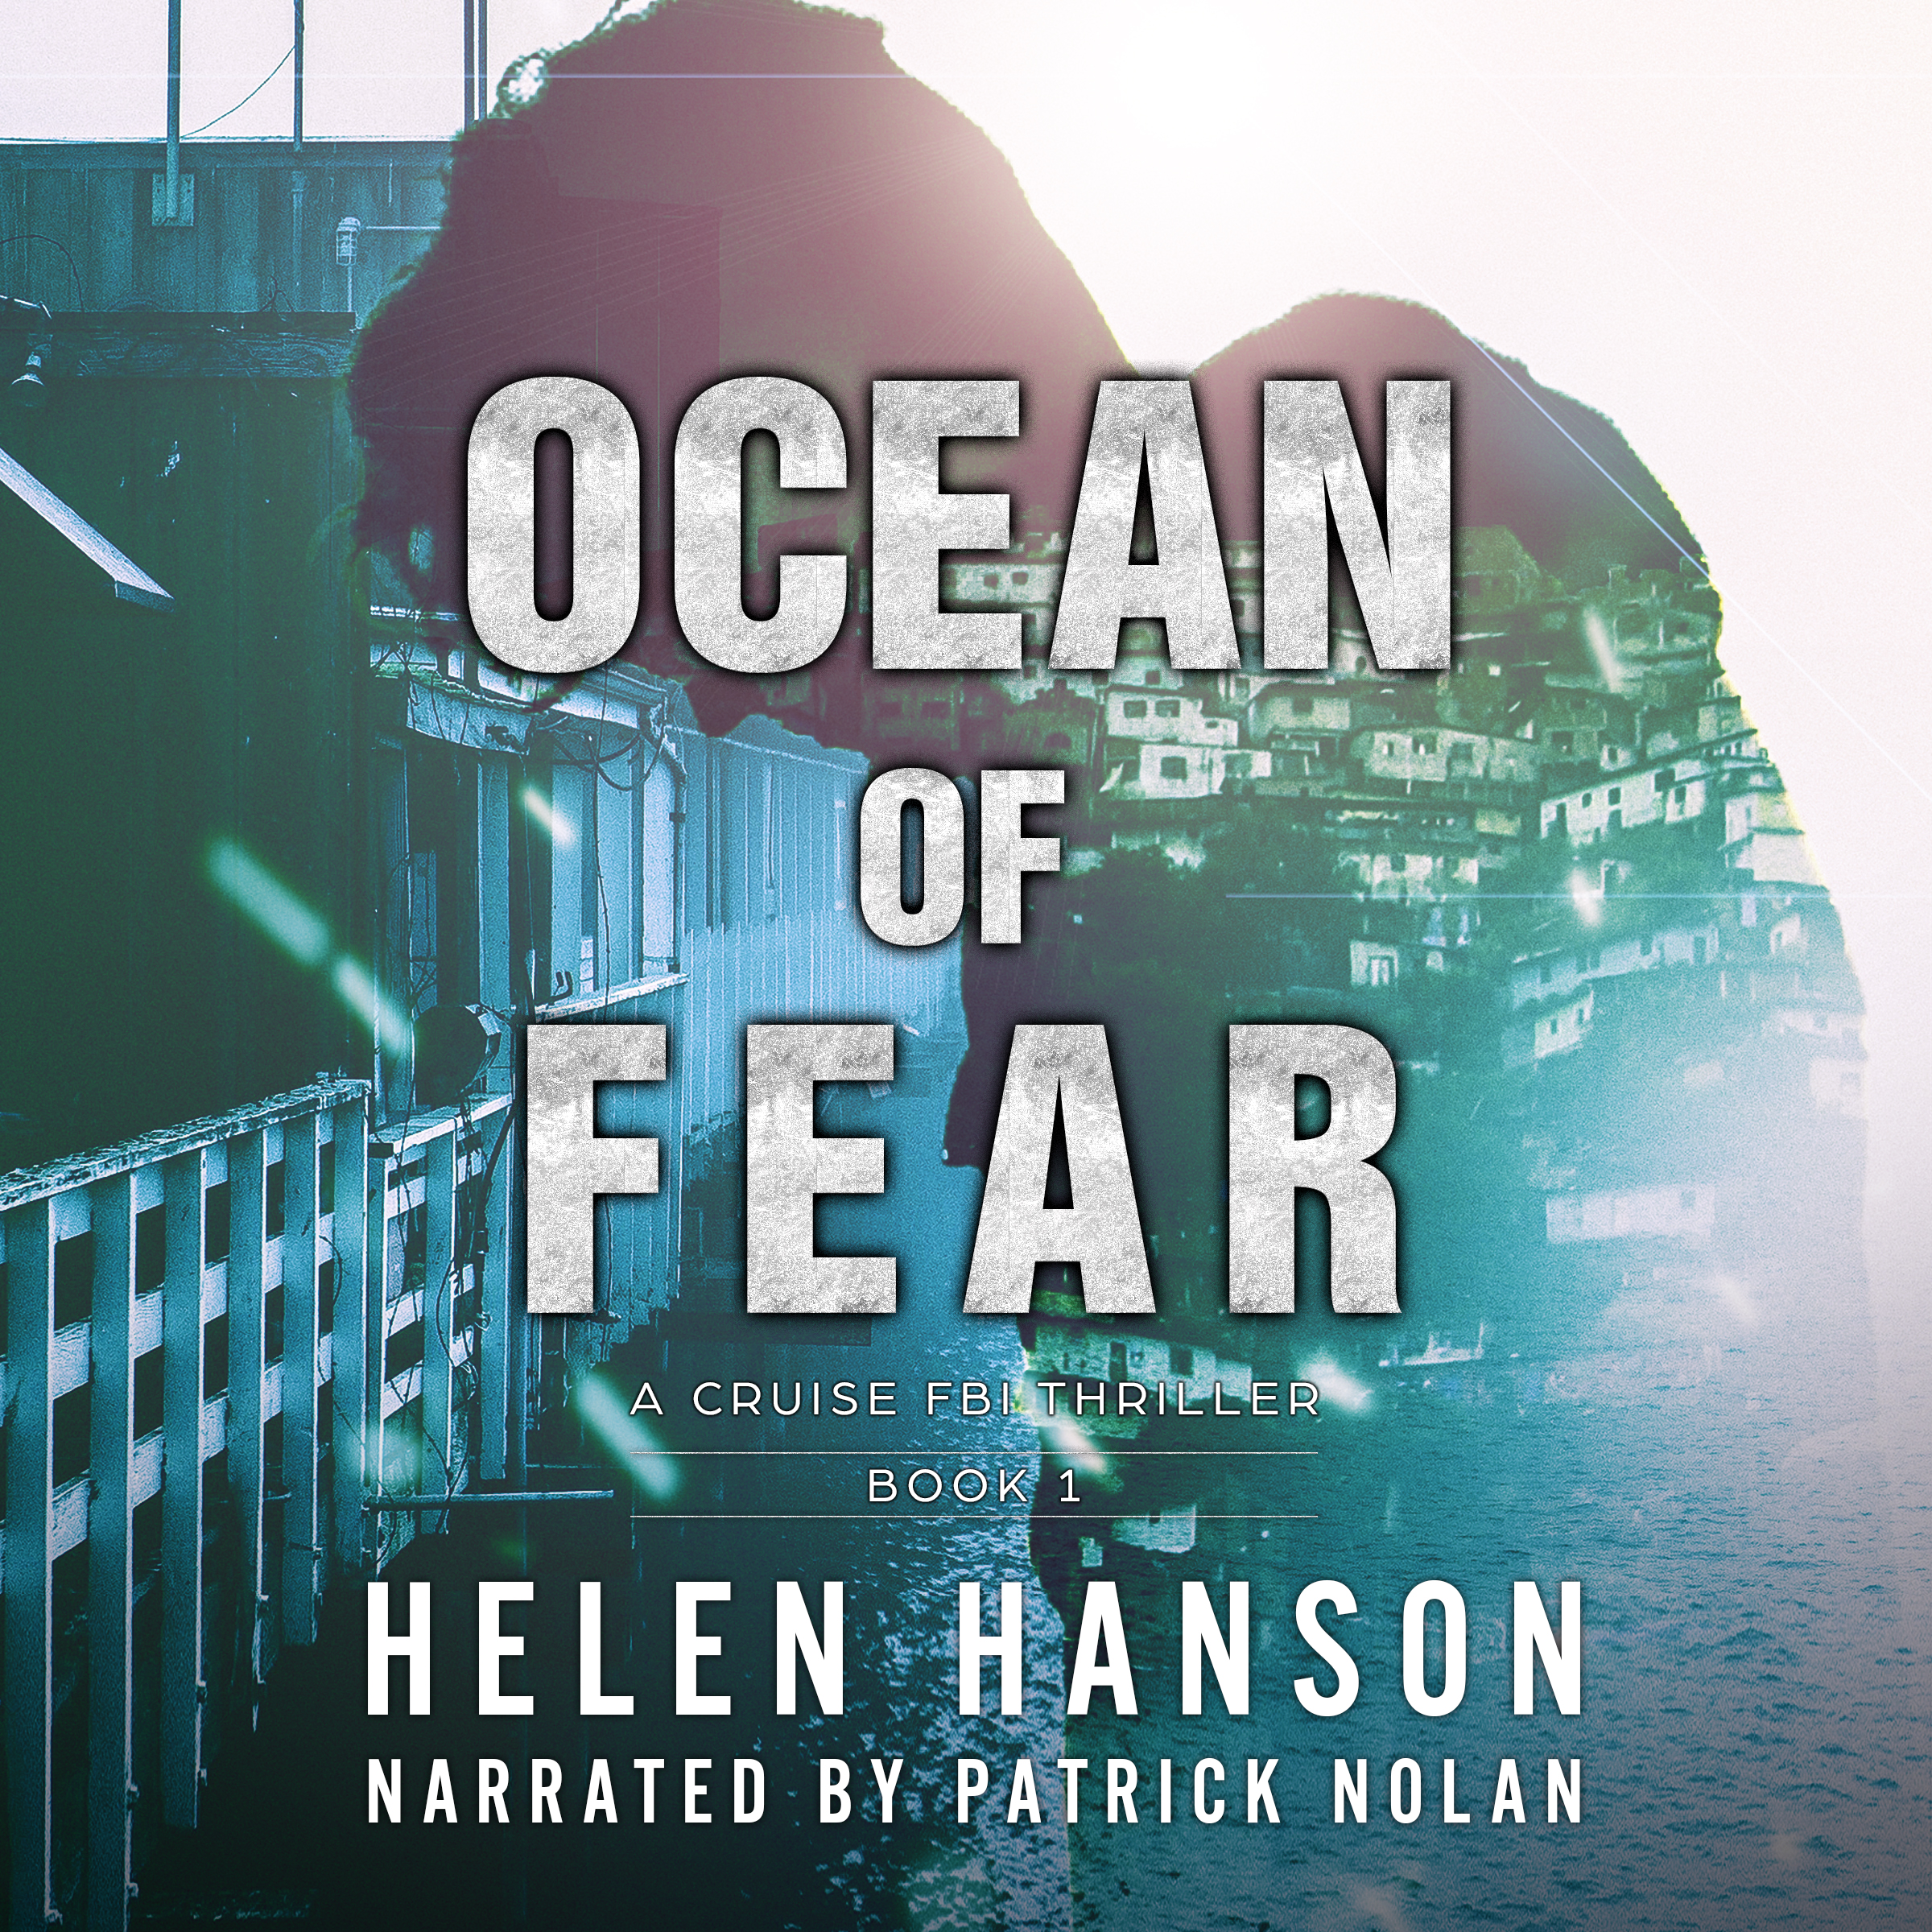 Ocean of Fear, Cruise FBI thriller series, hacker, cyber crime, cia thrillers, spy novels, espionage and spy thrillers, fbi thrillers, technothrillers, audiobook, audible, itunes